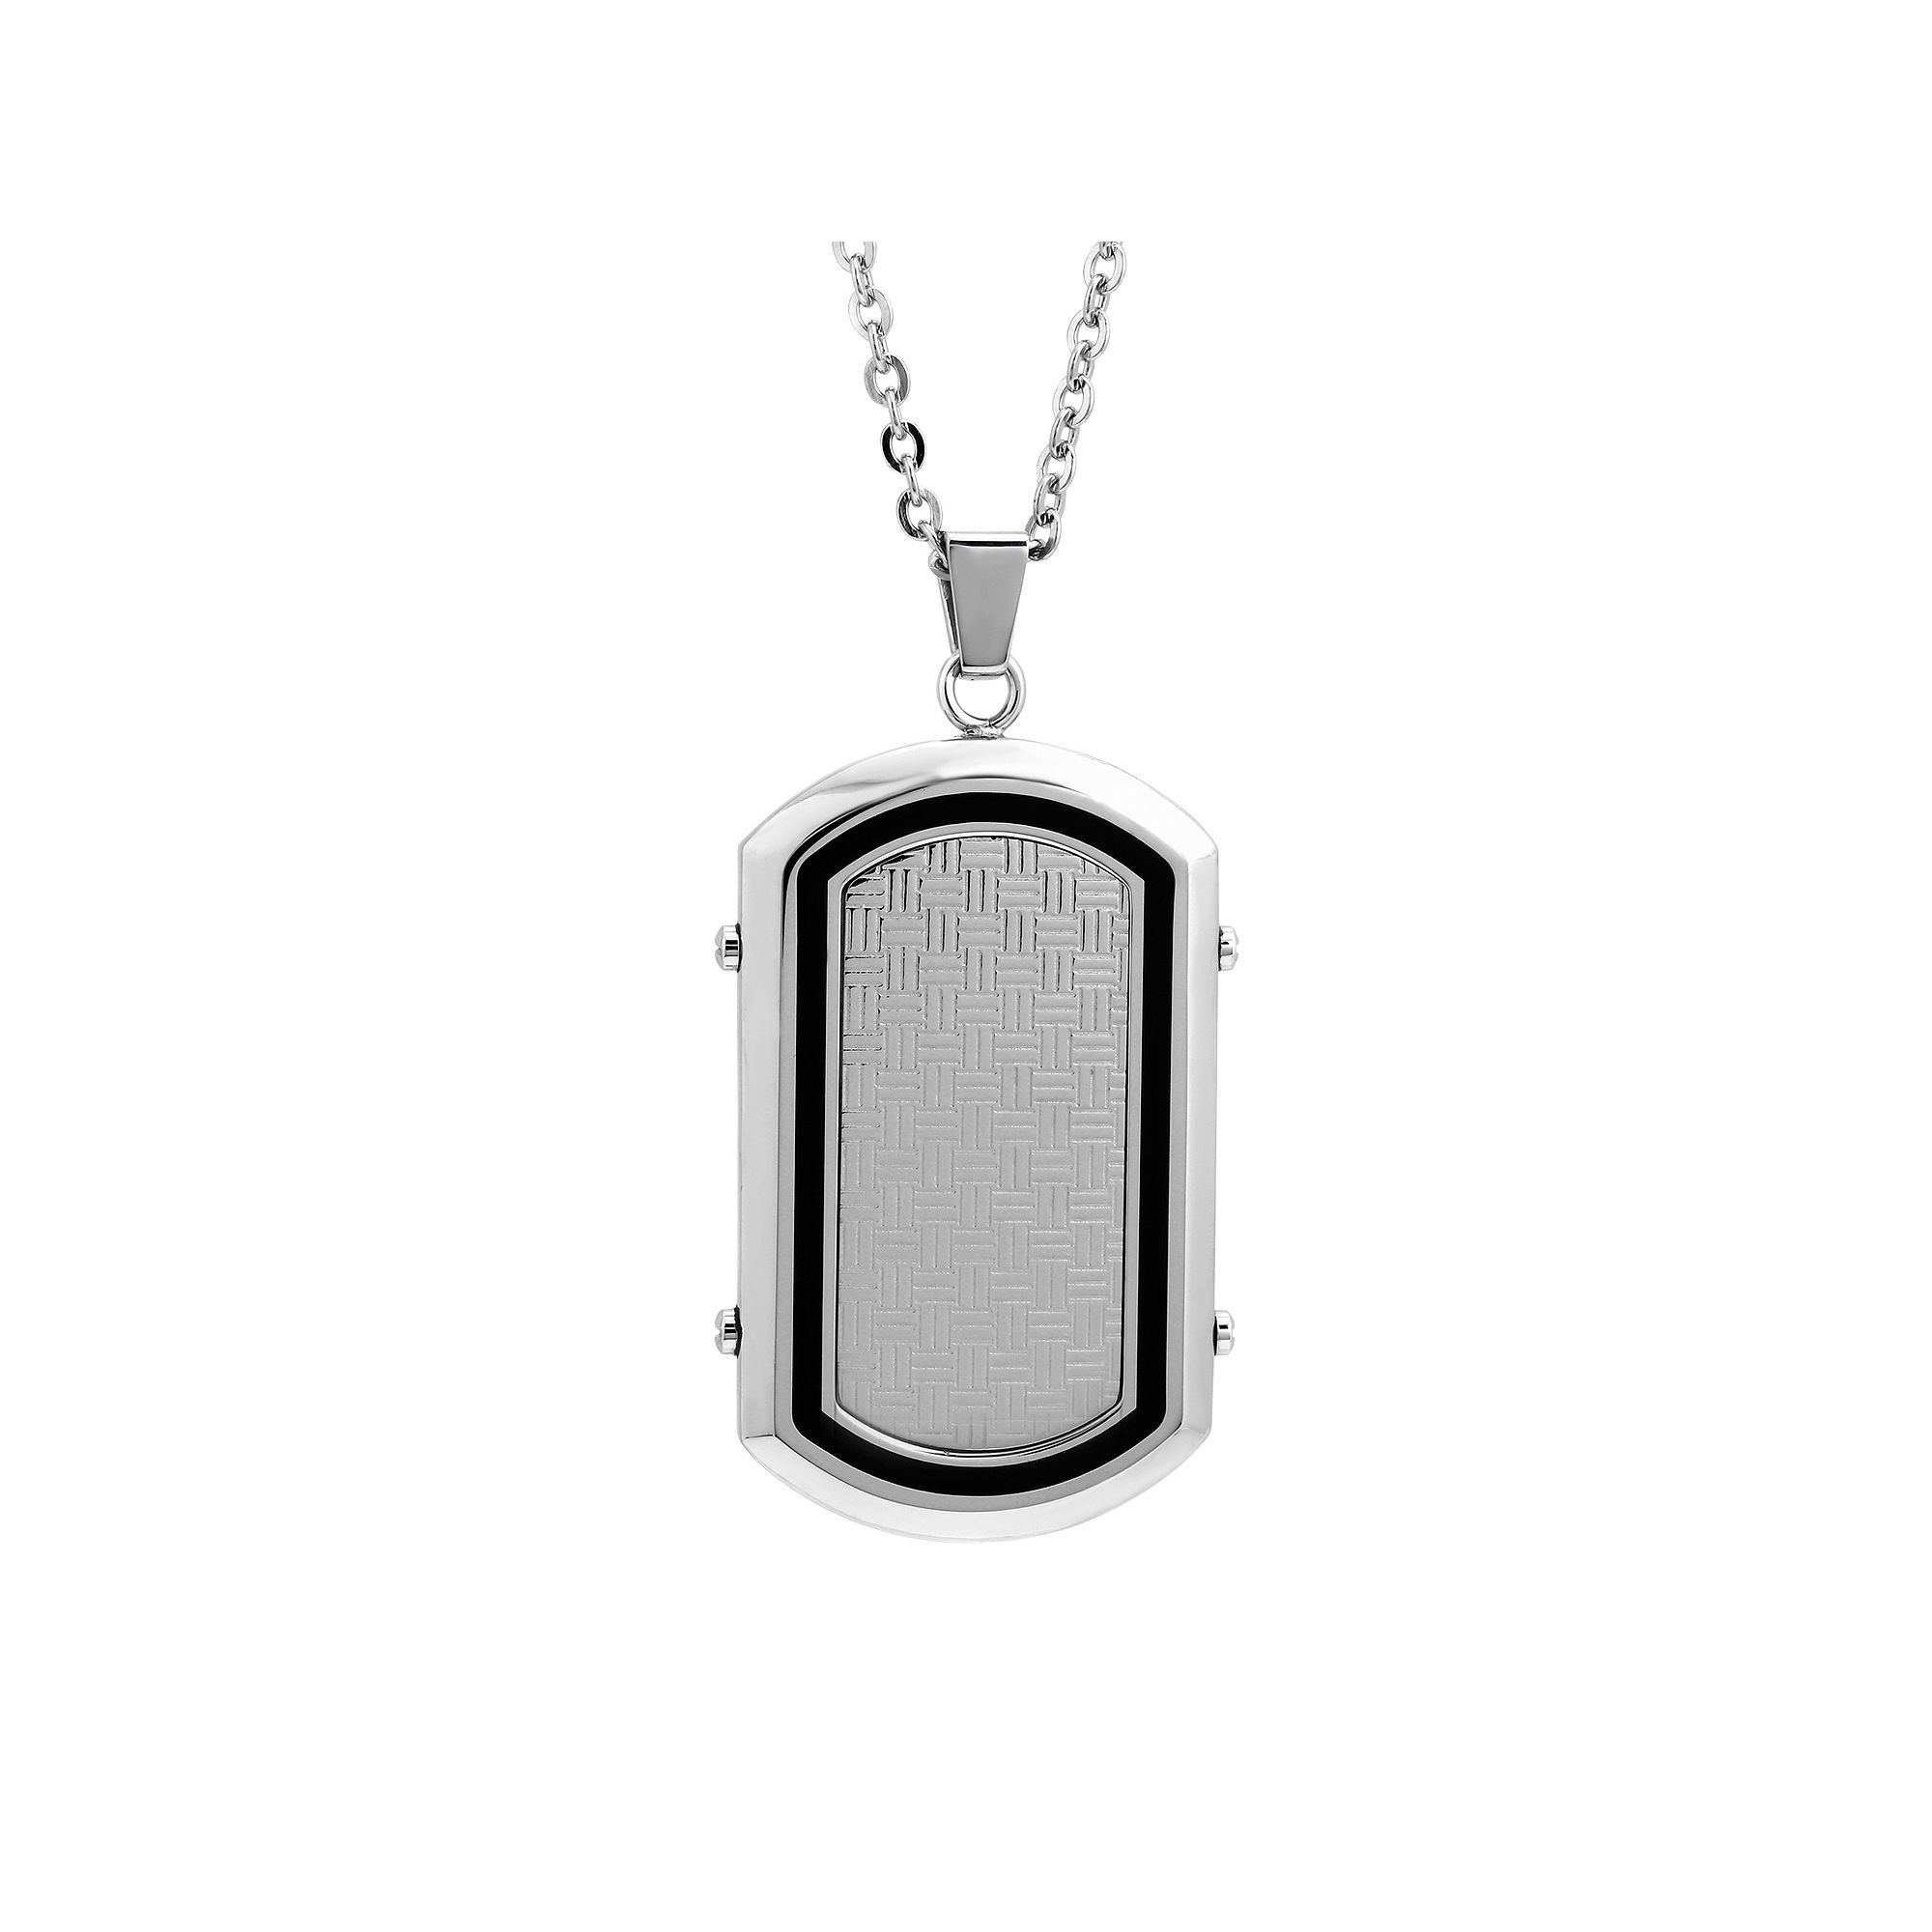 b9424d0bb Lynx Stainless Steel & Resin Dog Tag Necklace - Men | Products ...